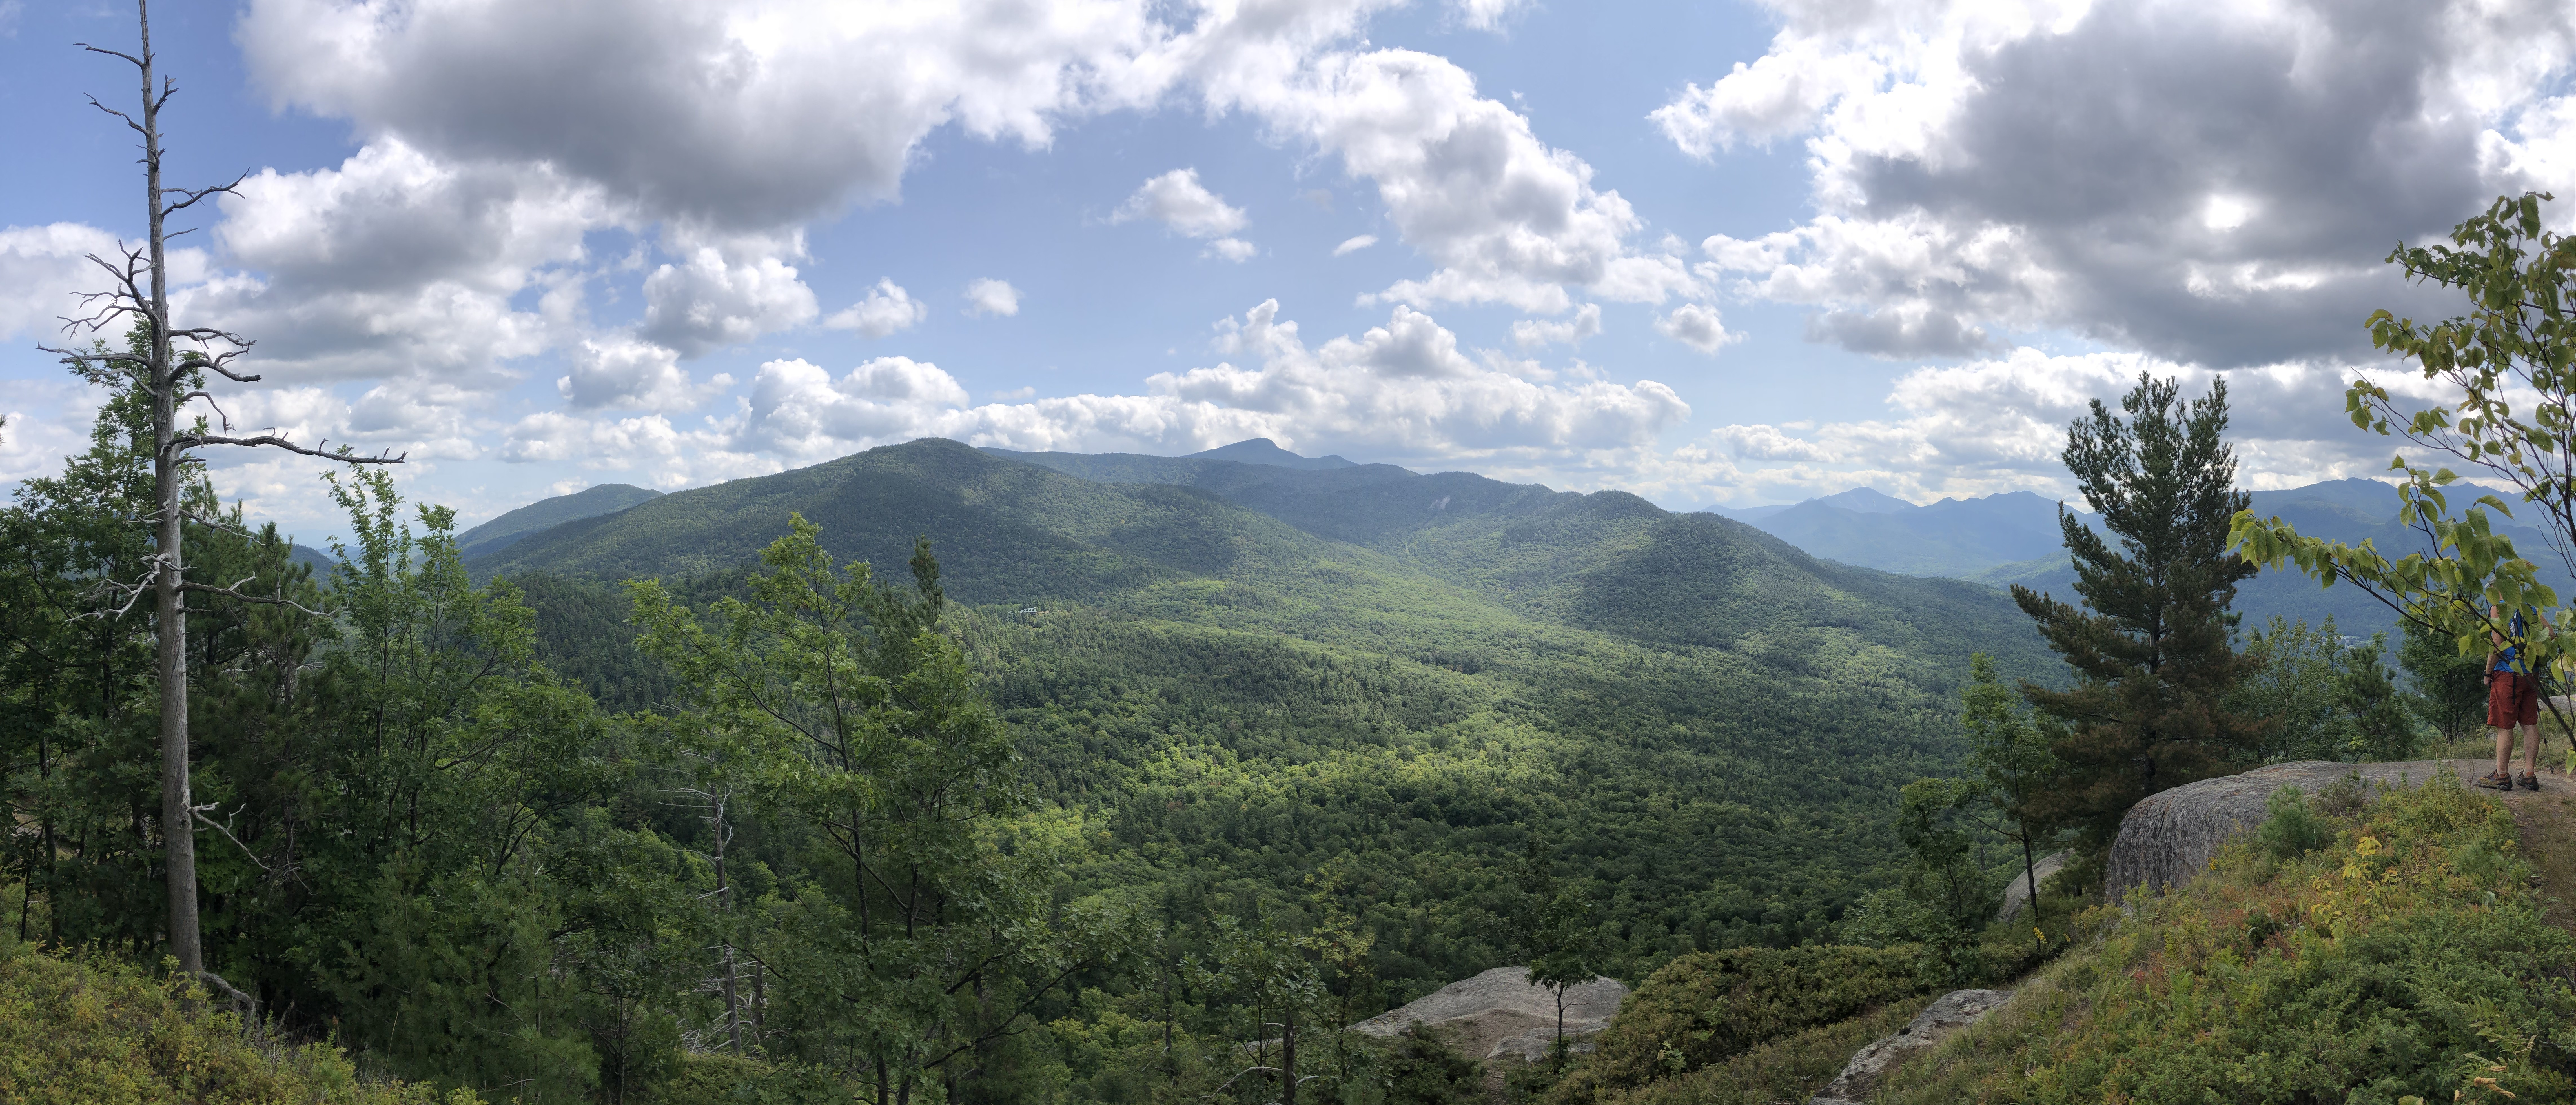 view from mountain top in the Adirondacks